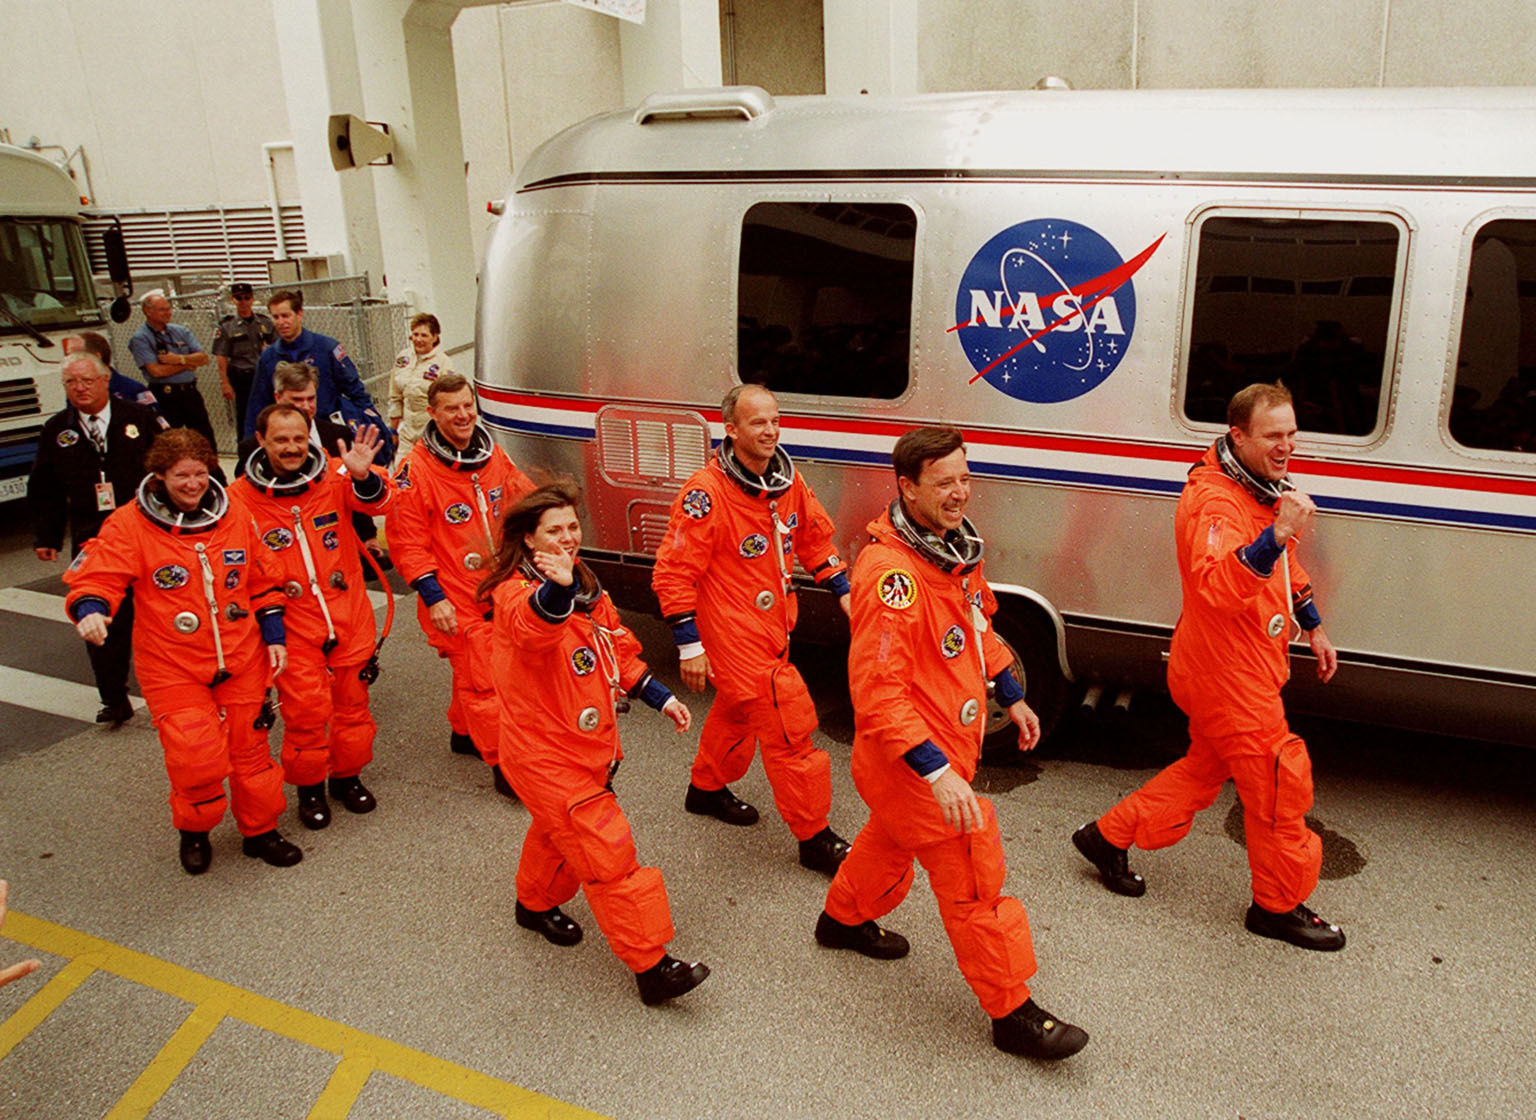 Waving to onlookers, the STS-101 crew eagerly walk to the waiting Astrovan that will take them to Launch Pad 39A and the second attempt at liftoff of Space Shuttle Atlantis. In their orange launch and entry suits, they are (left to right) Mission Specialists Susan J. Helms, Yury Usachev, James S. Voss, Mary Ellen Weber and Jeffrey N. Williams; Pilot Scott J. Horowitz; and Commander James D. Halsell Jr. The first launch attempt on April 24 was scrubbed due to unfavorable weather conditions. The mission will take the crew to the International Space Station to deliver logistics and supplies and to prepare the Station for the arrival of the Zvezda Service Module, expected to be launched by Russia in July 2000. Also, the crew will conduct one space walk. This will be the third assembly flight to the Space Station. Liftoff is targeted for 3:52 p.m. EDT. The mission is expected to last about 10 days, with Atlantis landing at KSC Saturday, May 6, about 11:53 a.m. EDT